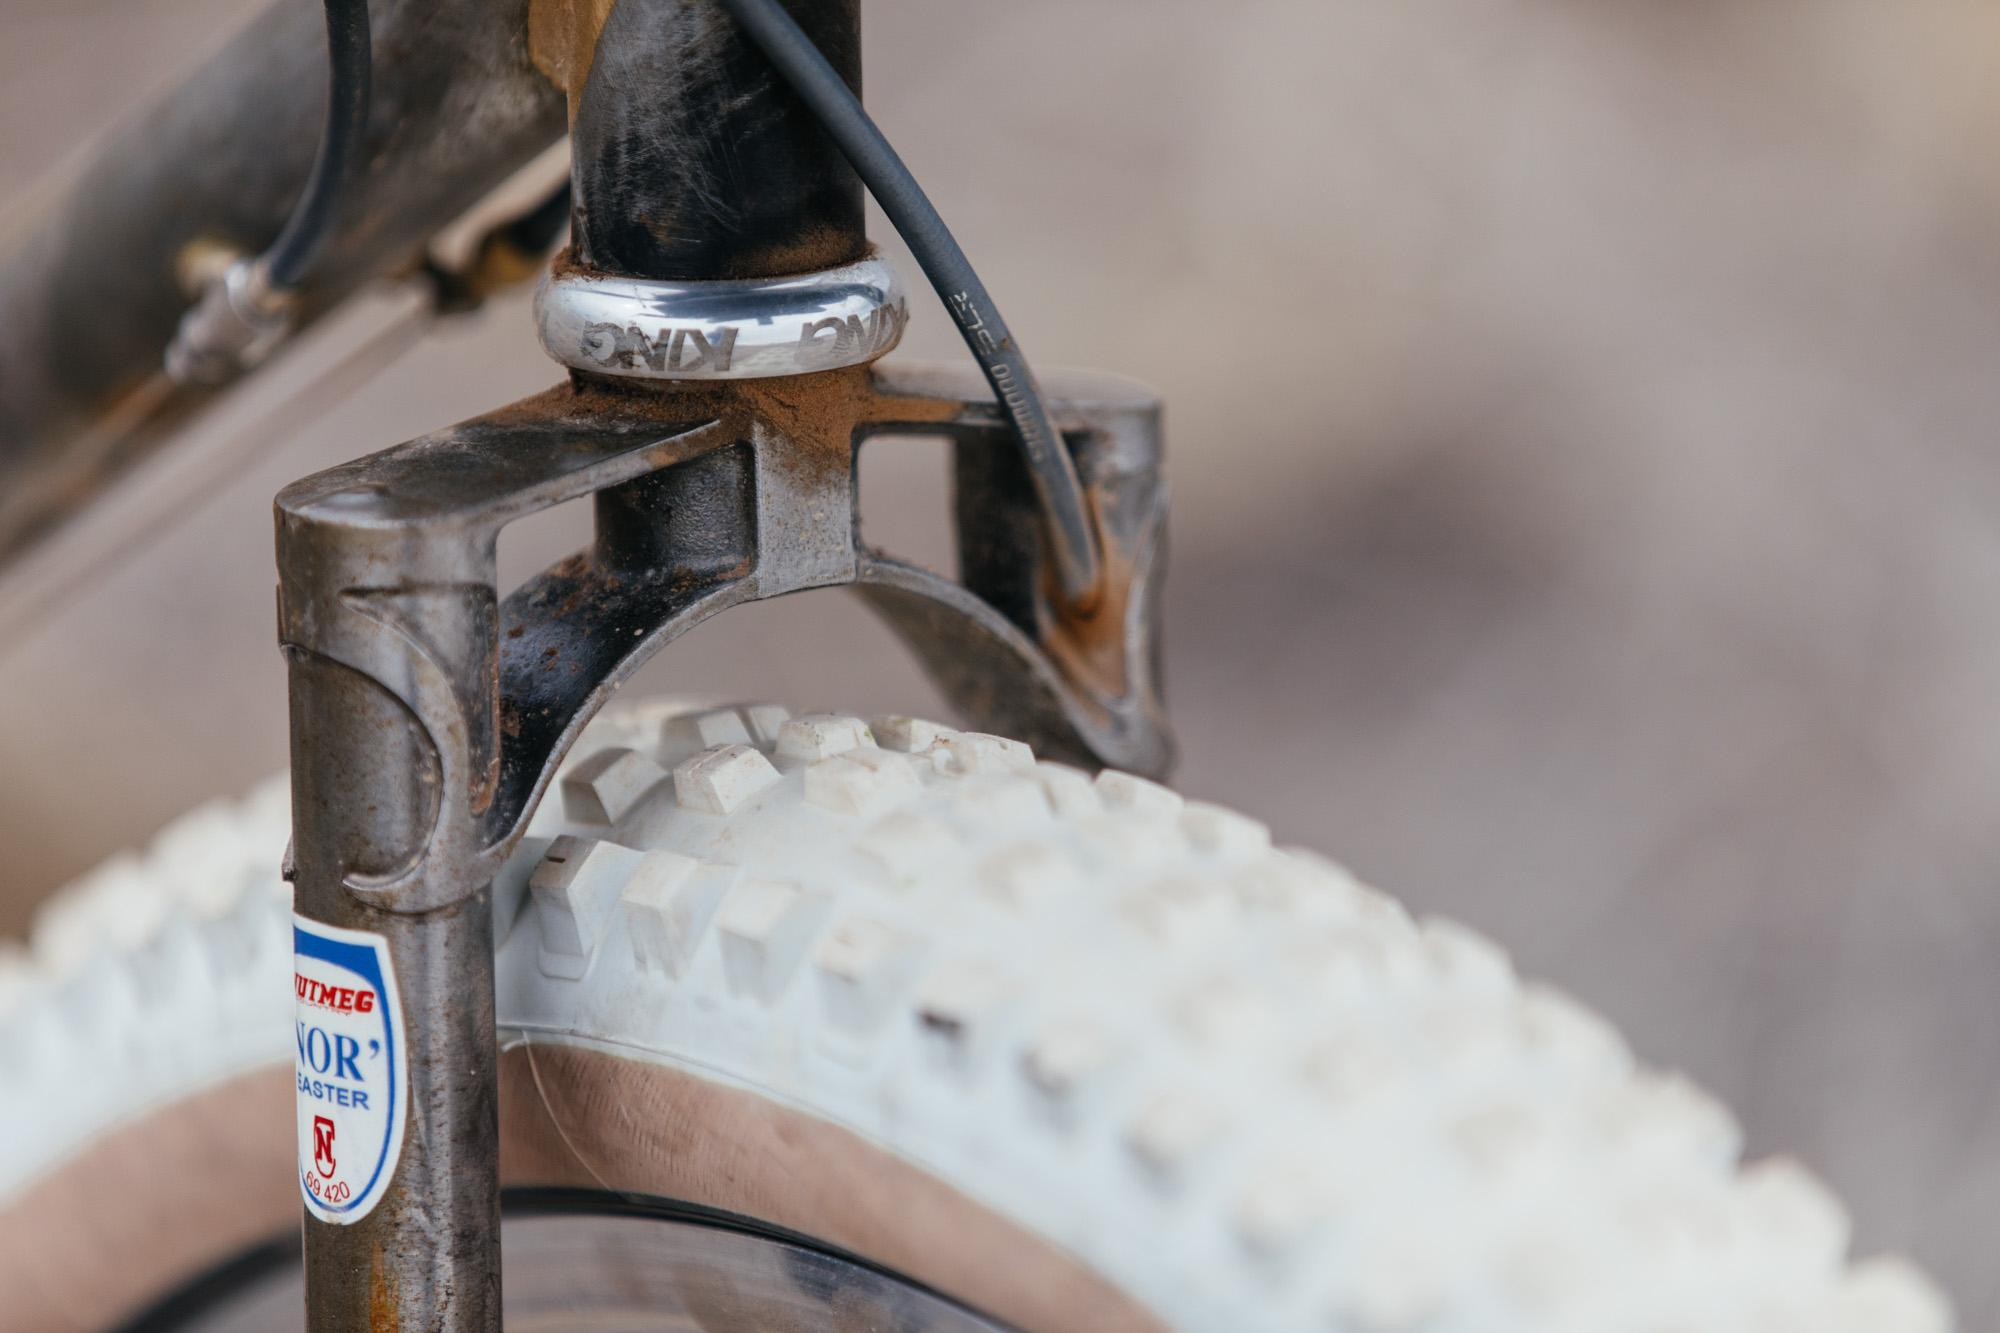 Ronnie's Clockwork Dirt Drop MTB